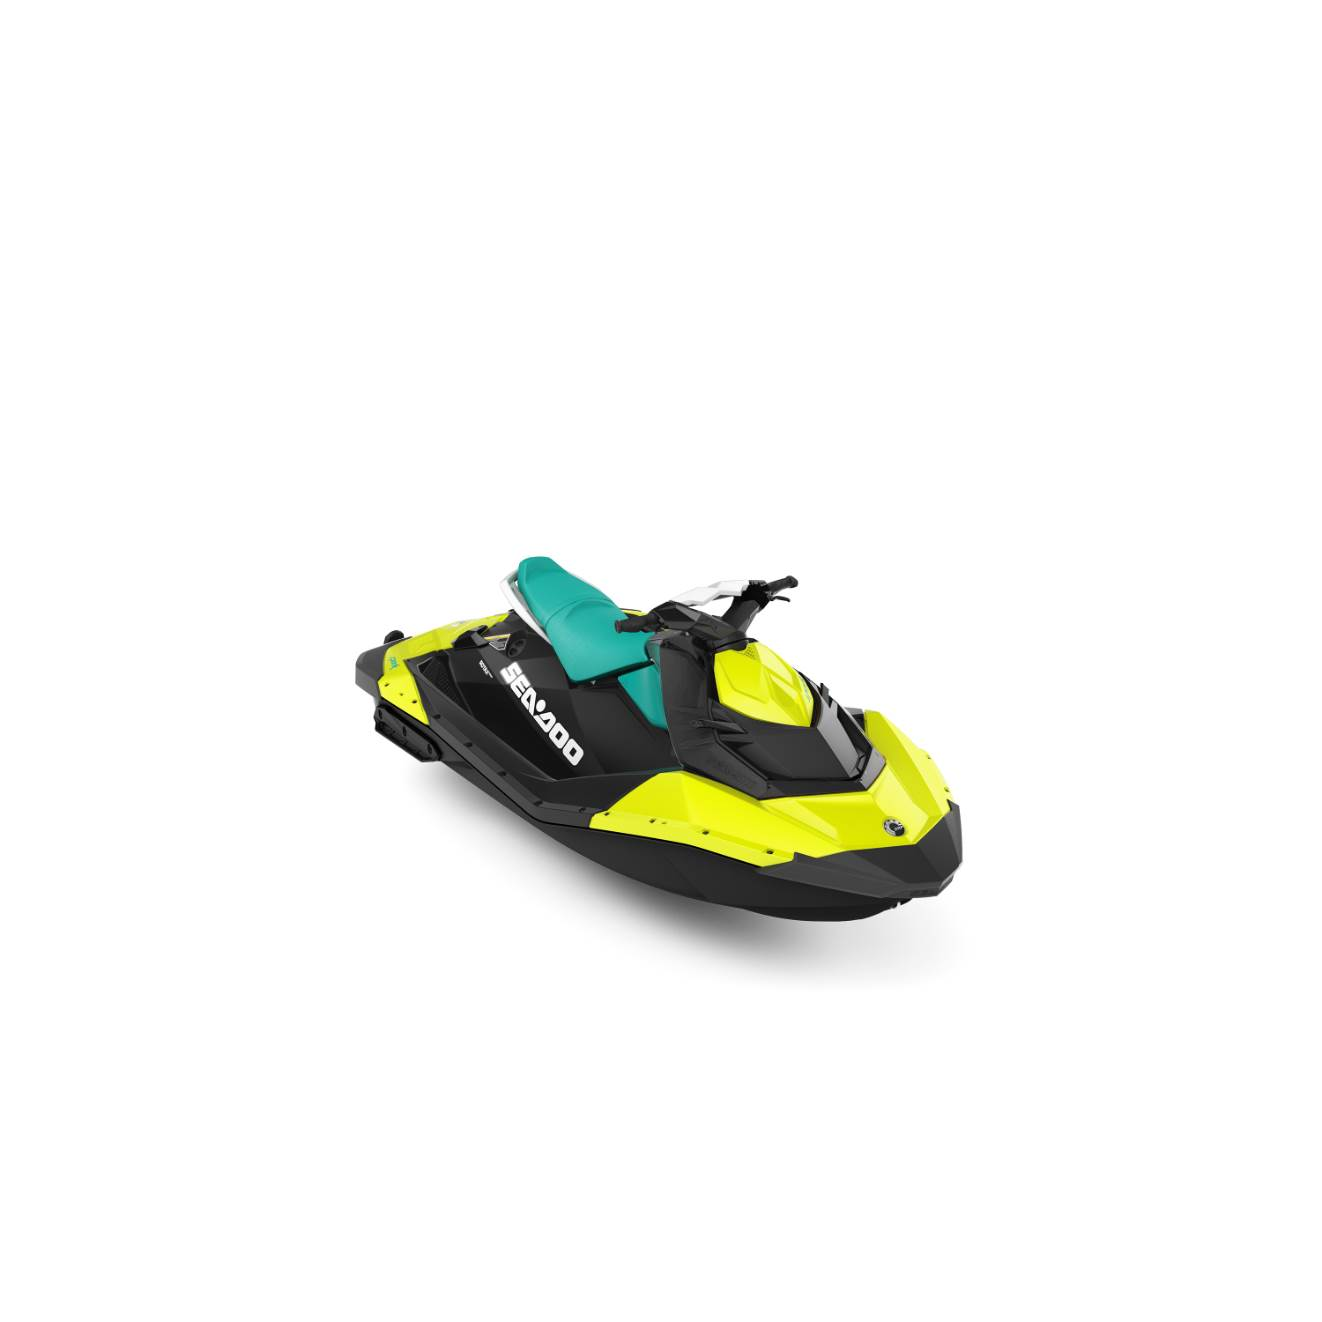 2019 Sea-Doo Spark 3up 900 H.O. ACE in Clearwater, Florida - Photo 10